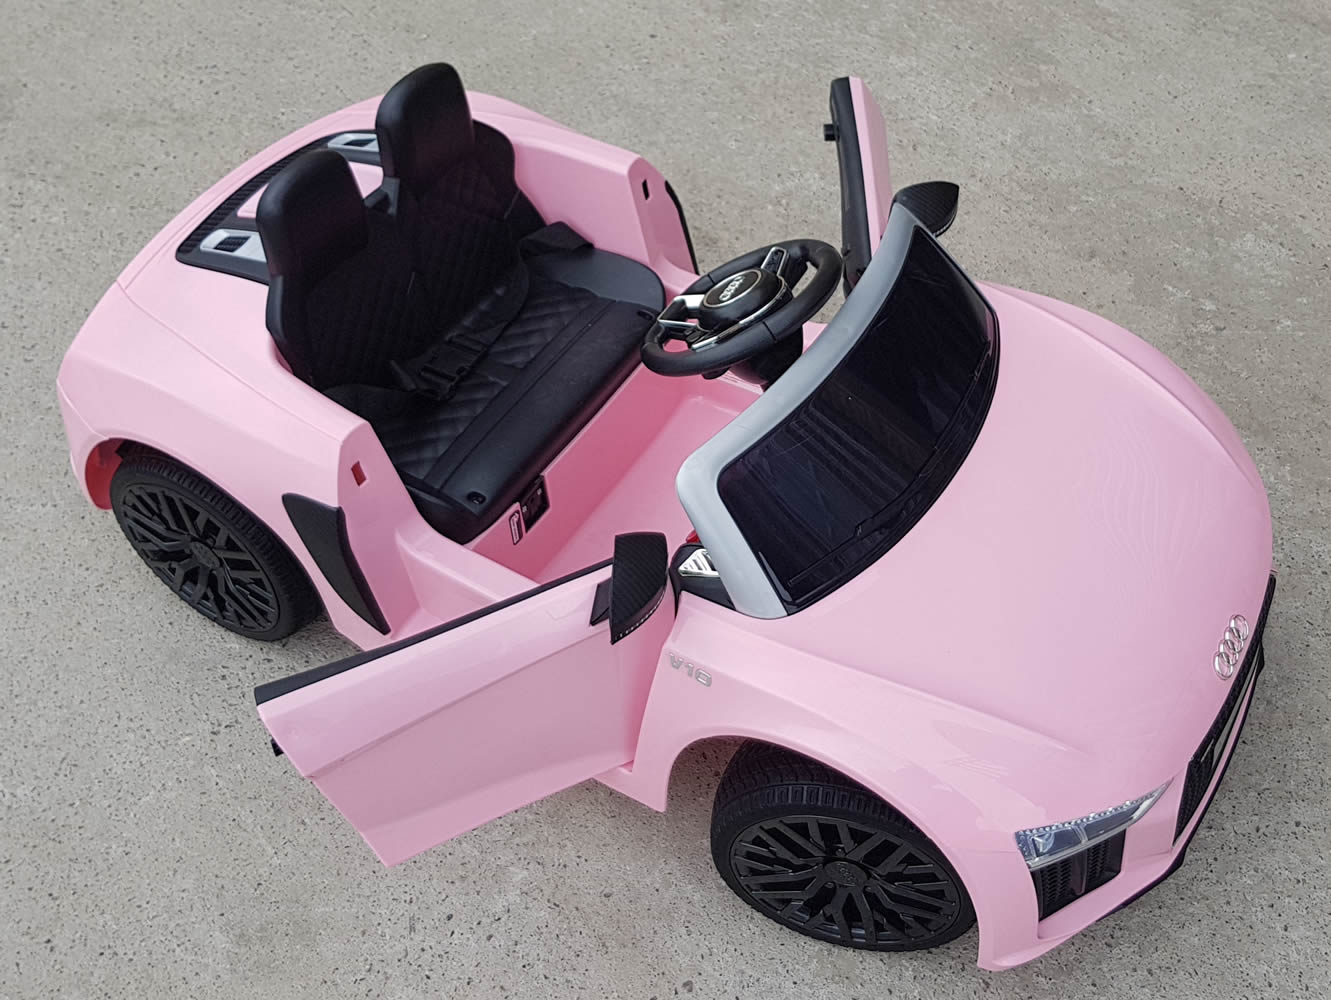 Black Friday Audi R8 Spyder Compact 12v Kids Car with Remote - Pink